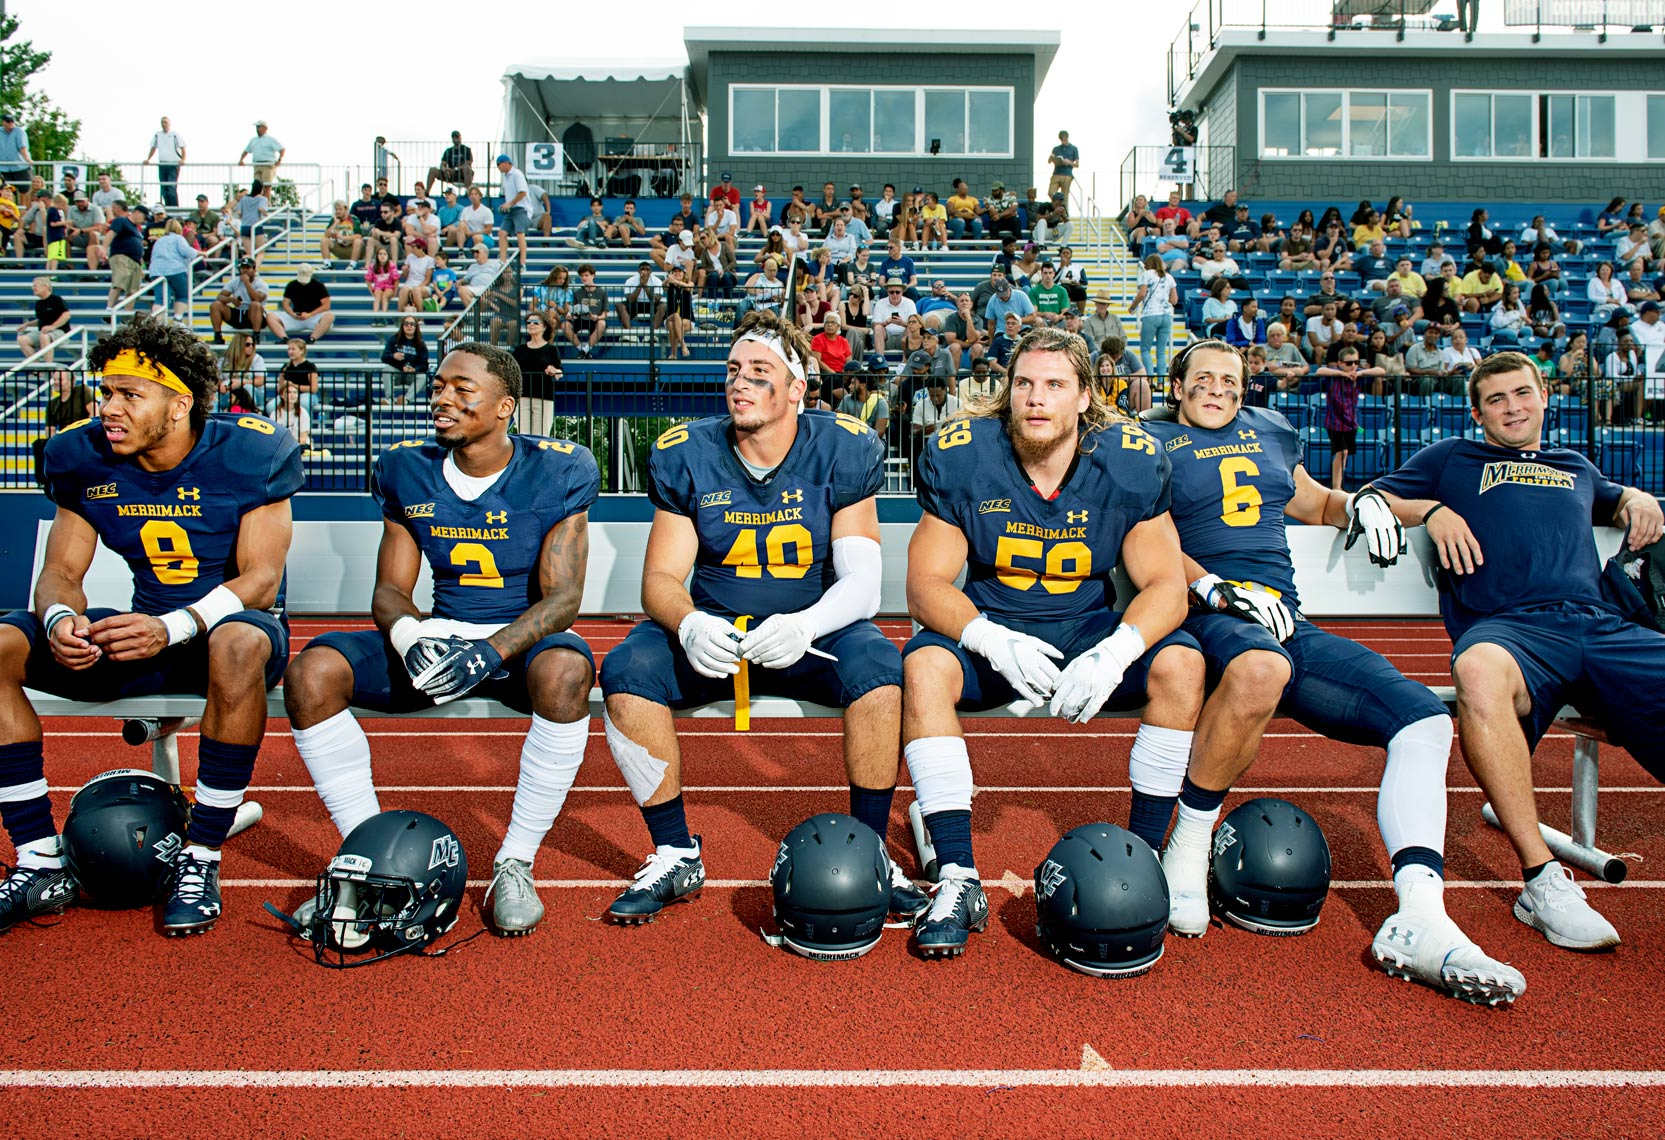 Division One football at Merrimack College in North Andover Massachusetts